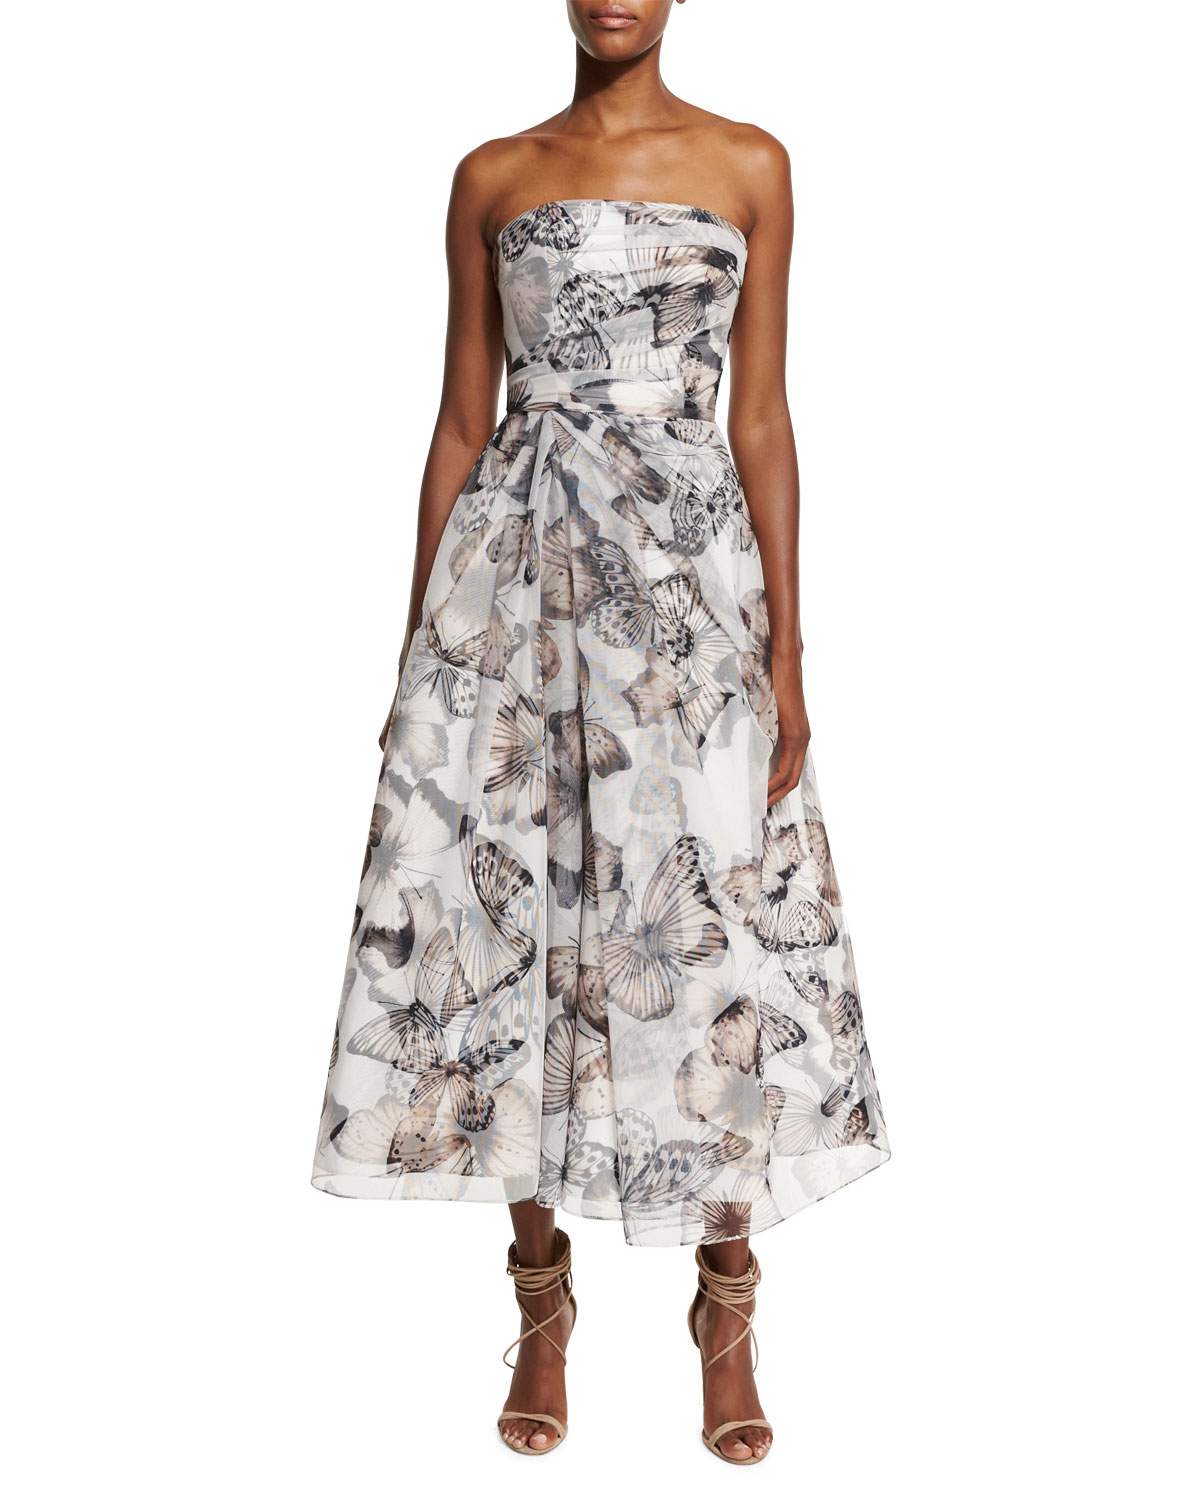 Strapless Butterfly-Print Midi Cocktail Dress, Black/Multicolor